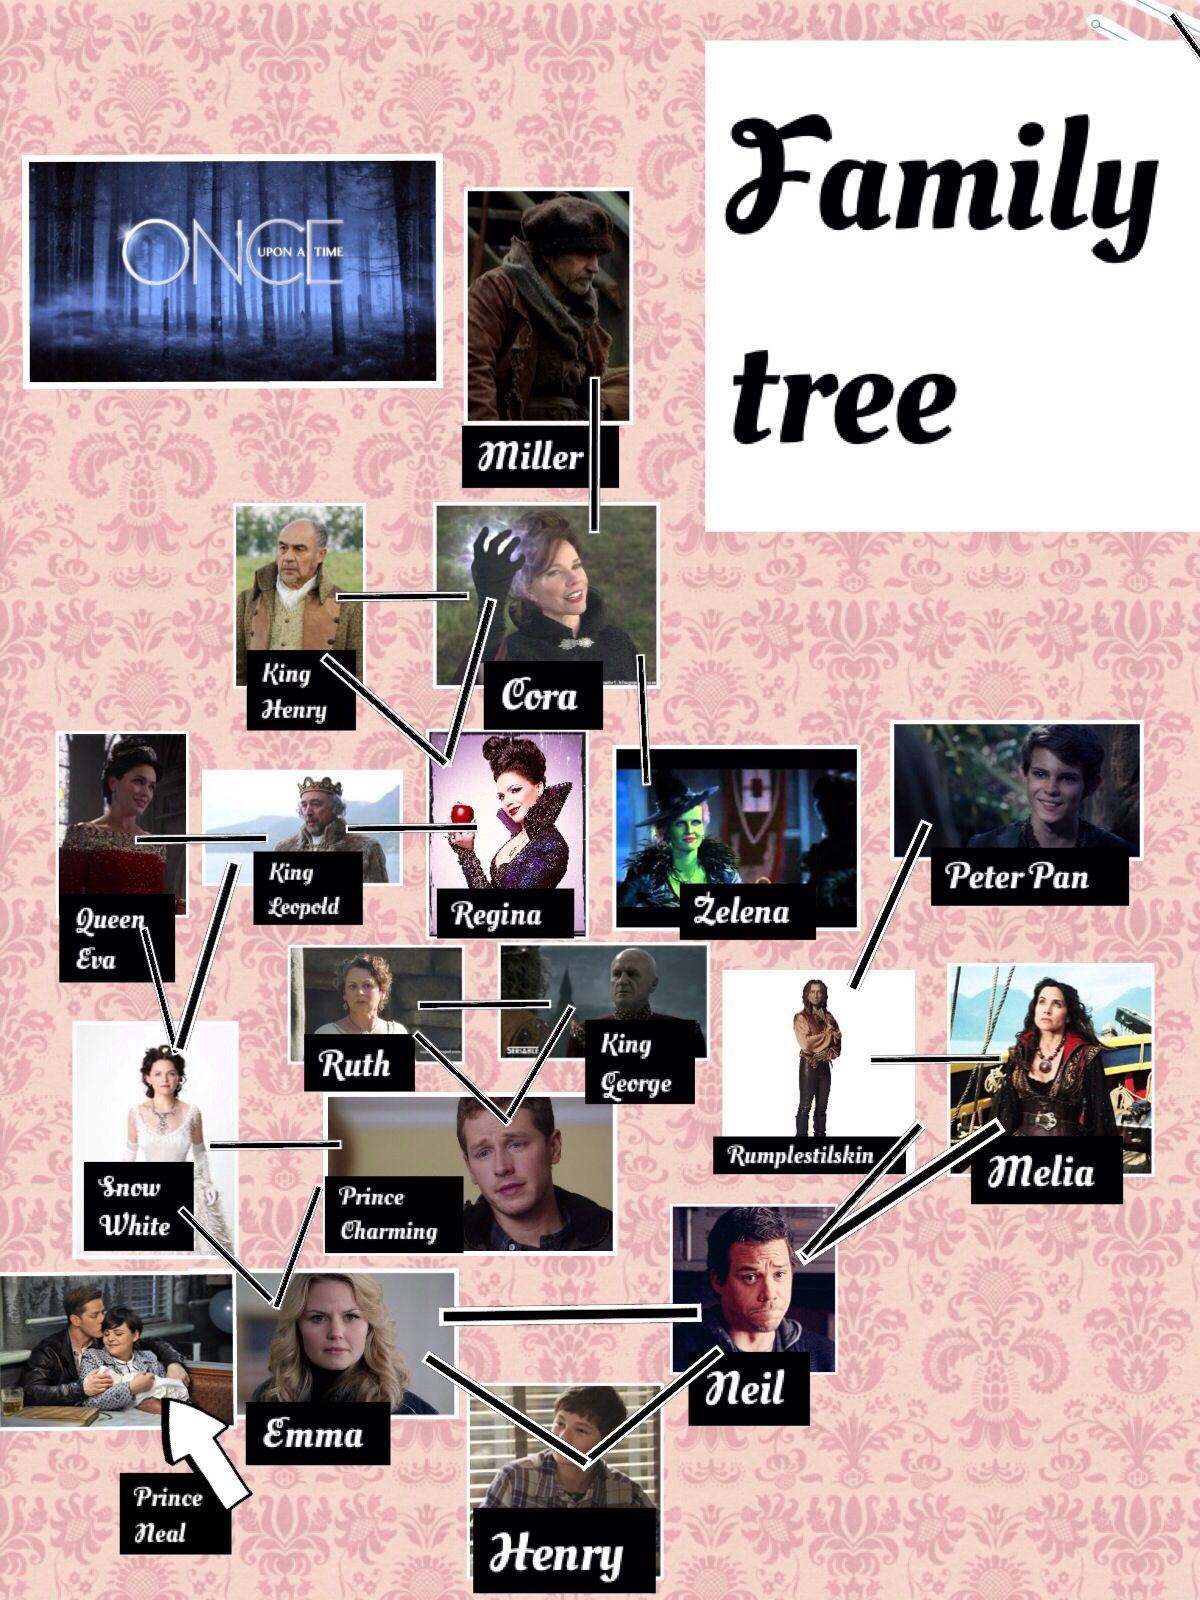 Ouat Family Tree : family, Jewel, First, Board:Ouat, Family, Tree,, Rumplestilskin,